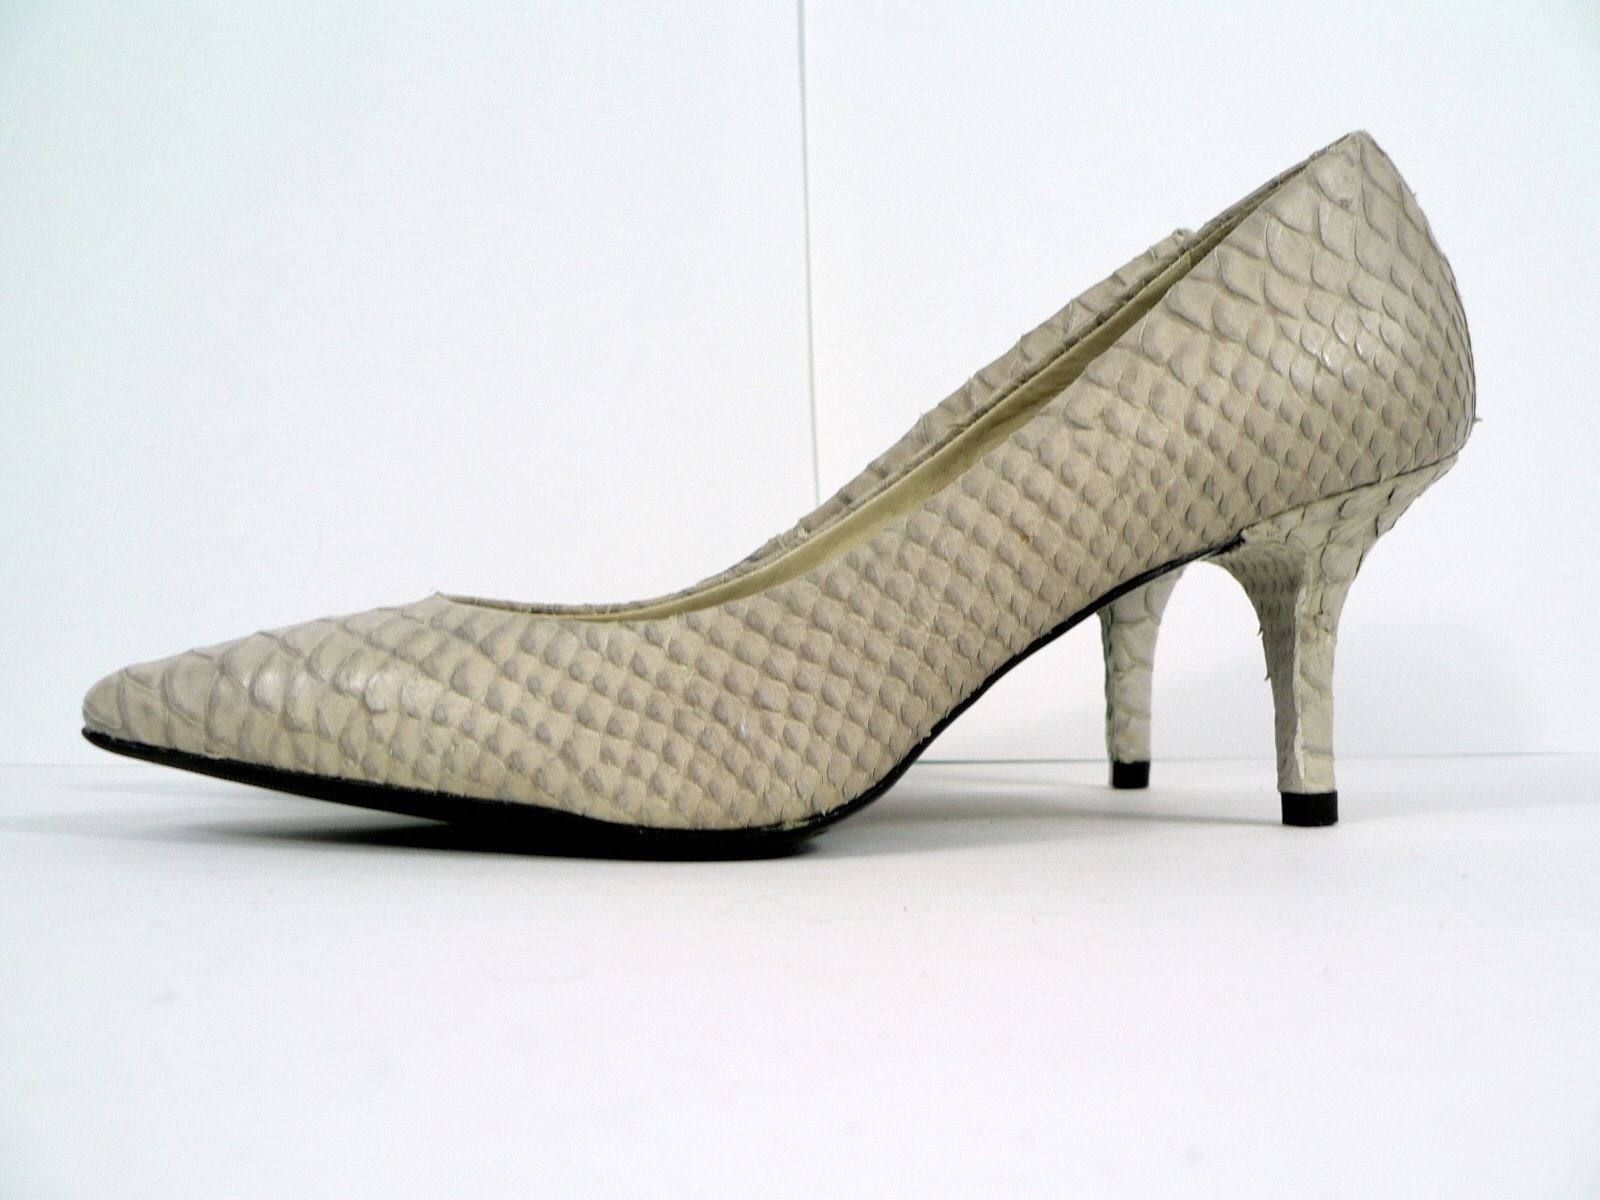 d98c8b6fbed Talbots Light Gray Leather Faux Snakeskin Pumps Womens Shoe 6AA Heels 2.75